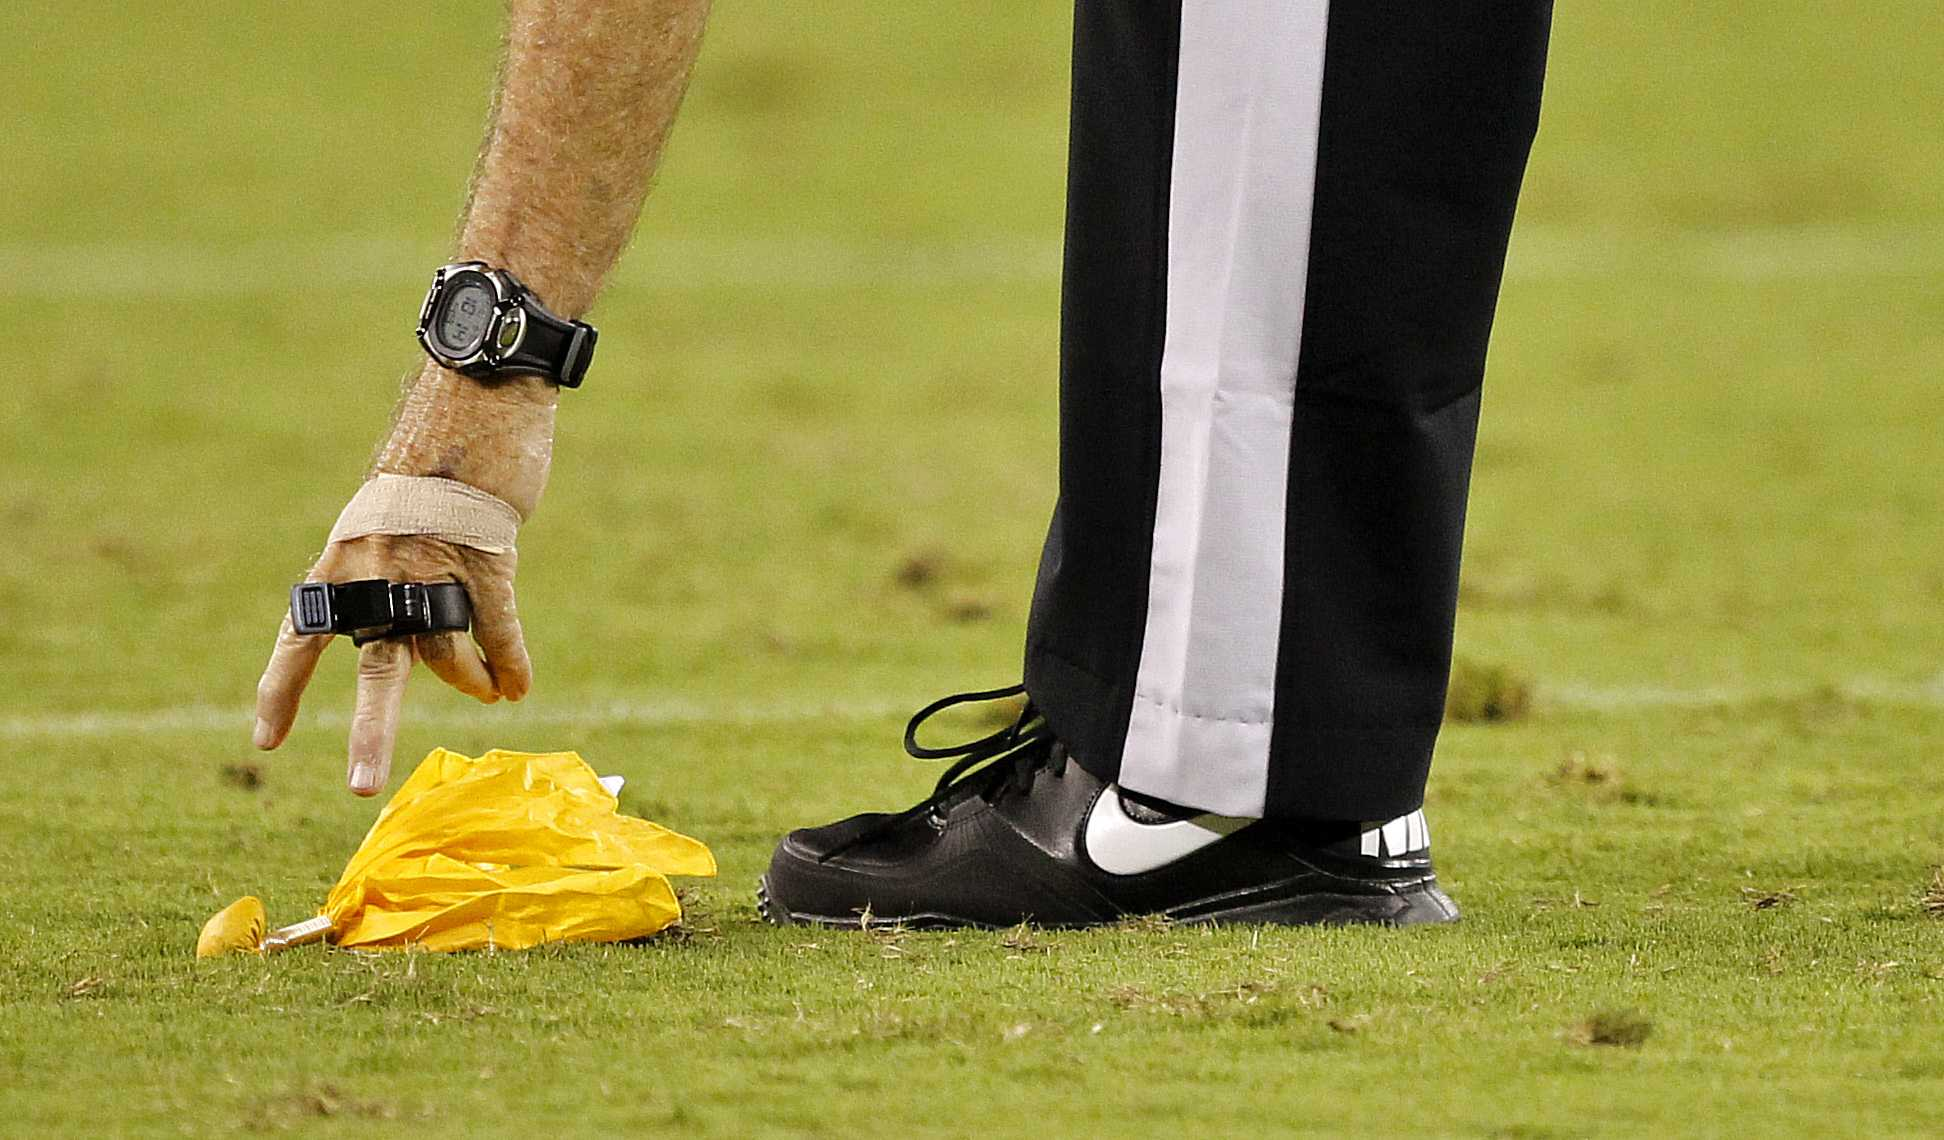 A referee picks up the yellow flag during the second half of an NFL preseason football game between the Denver Broncos and the Arizona Cardinals, Thursday, Aug. 30, 2012,in Glendale, Ariz. (AP Photo/Matt York)